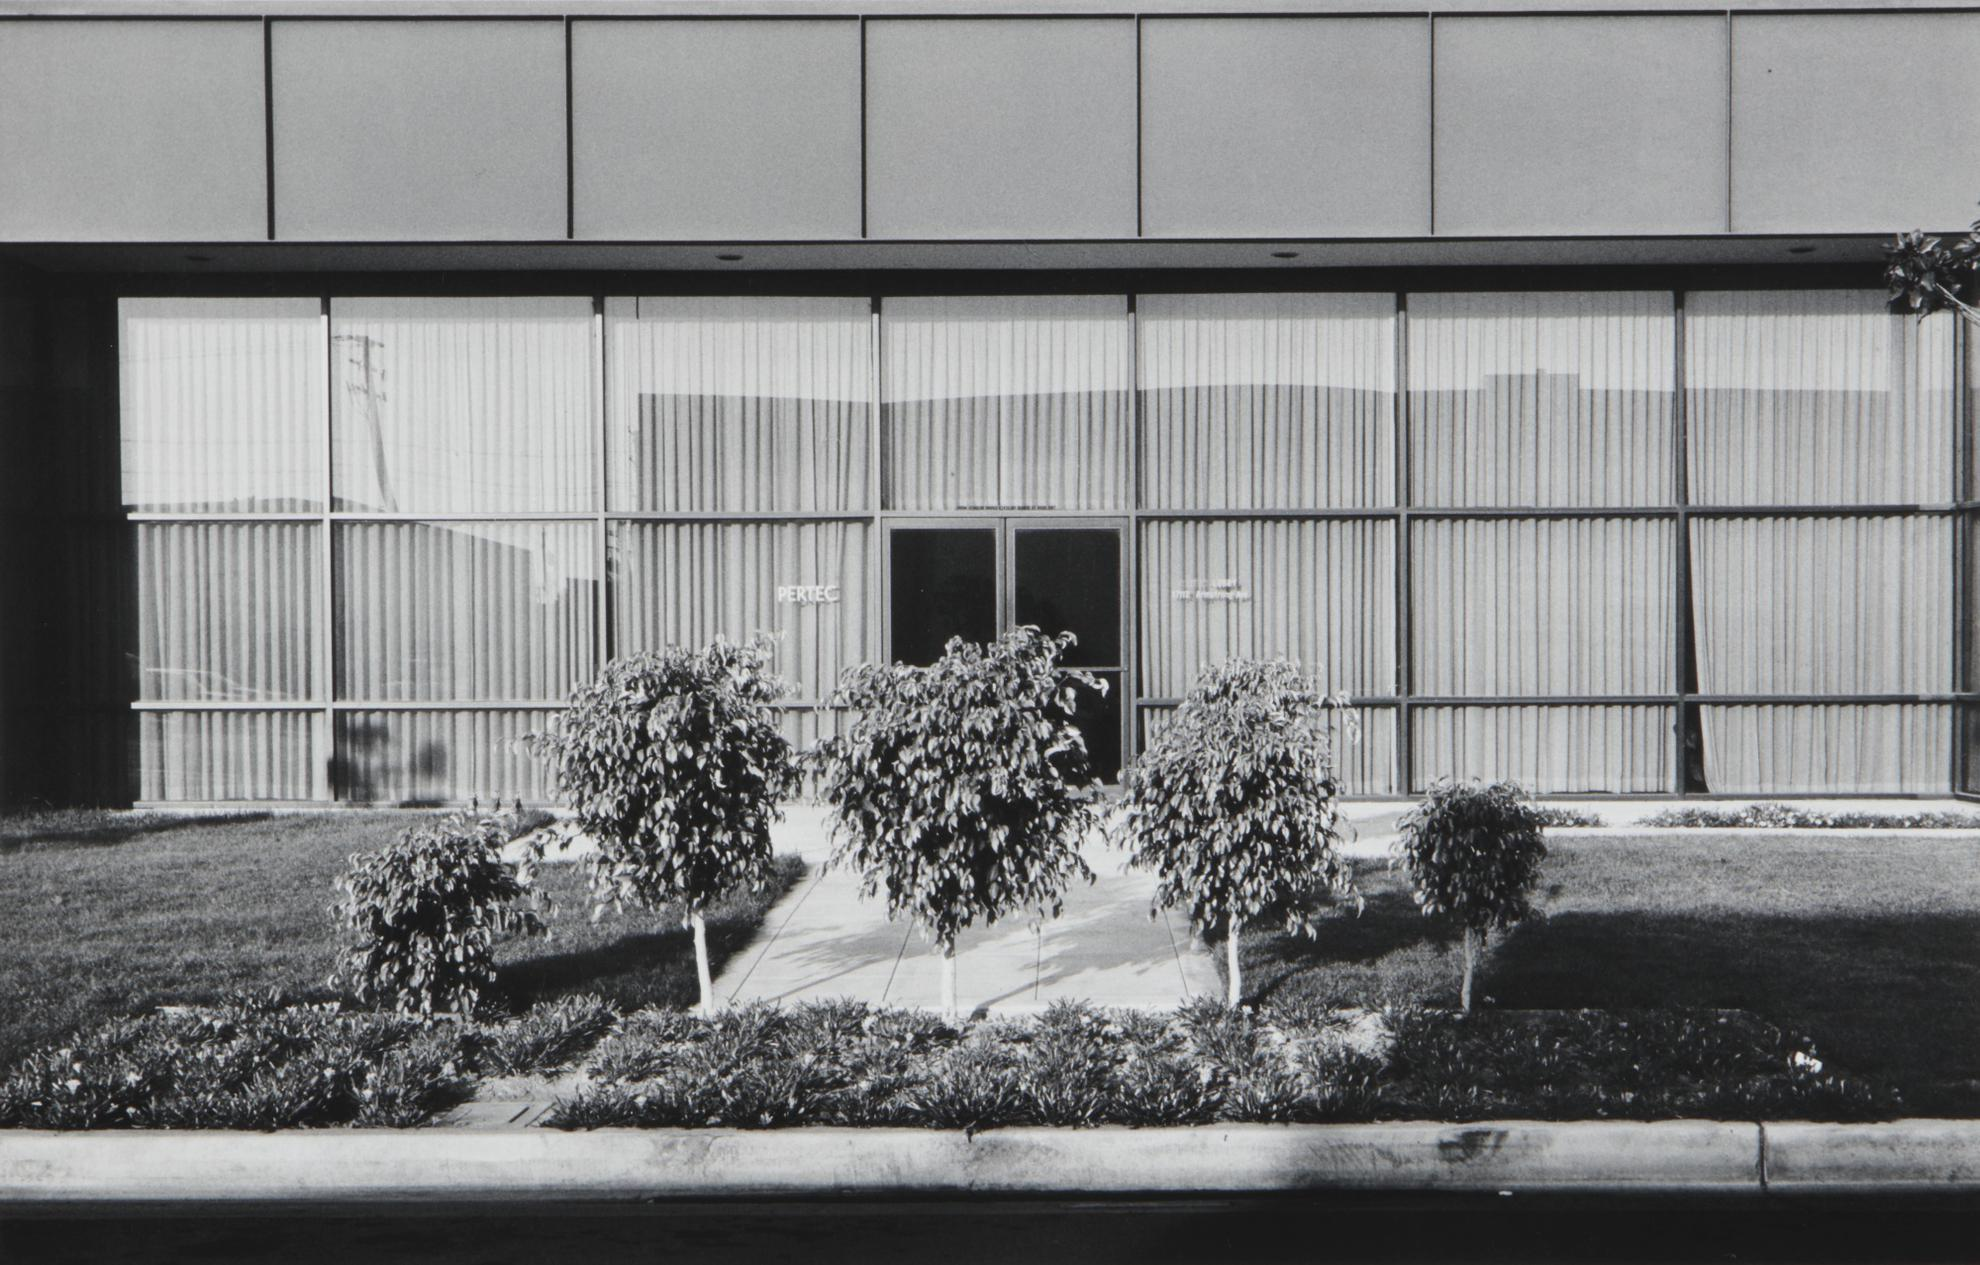 Lewis Baltz-New Industrial Parks #37: East Wall, Business Systems Division, Pertec, 1881 Langley, Santa Ana-